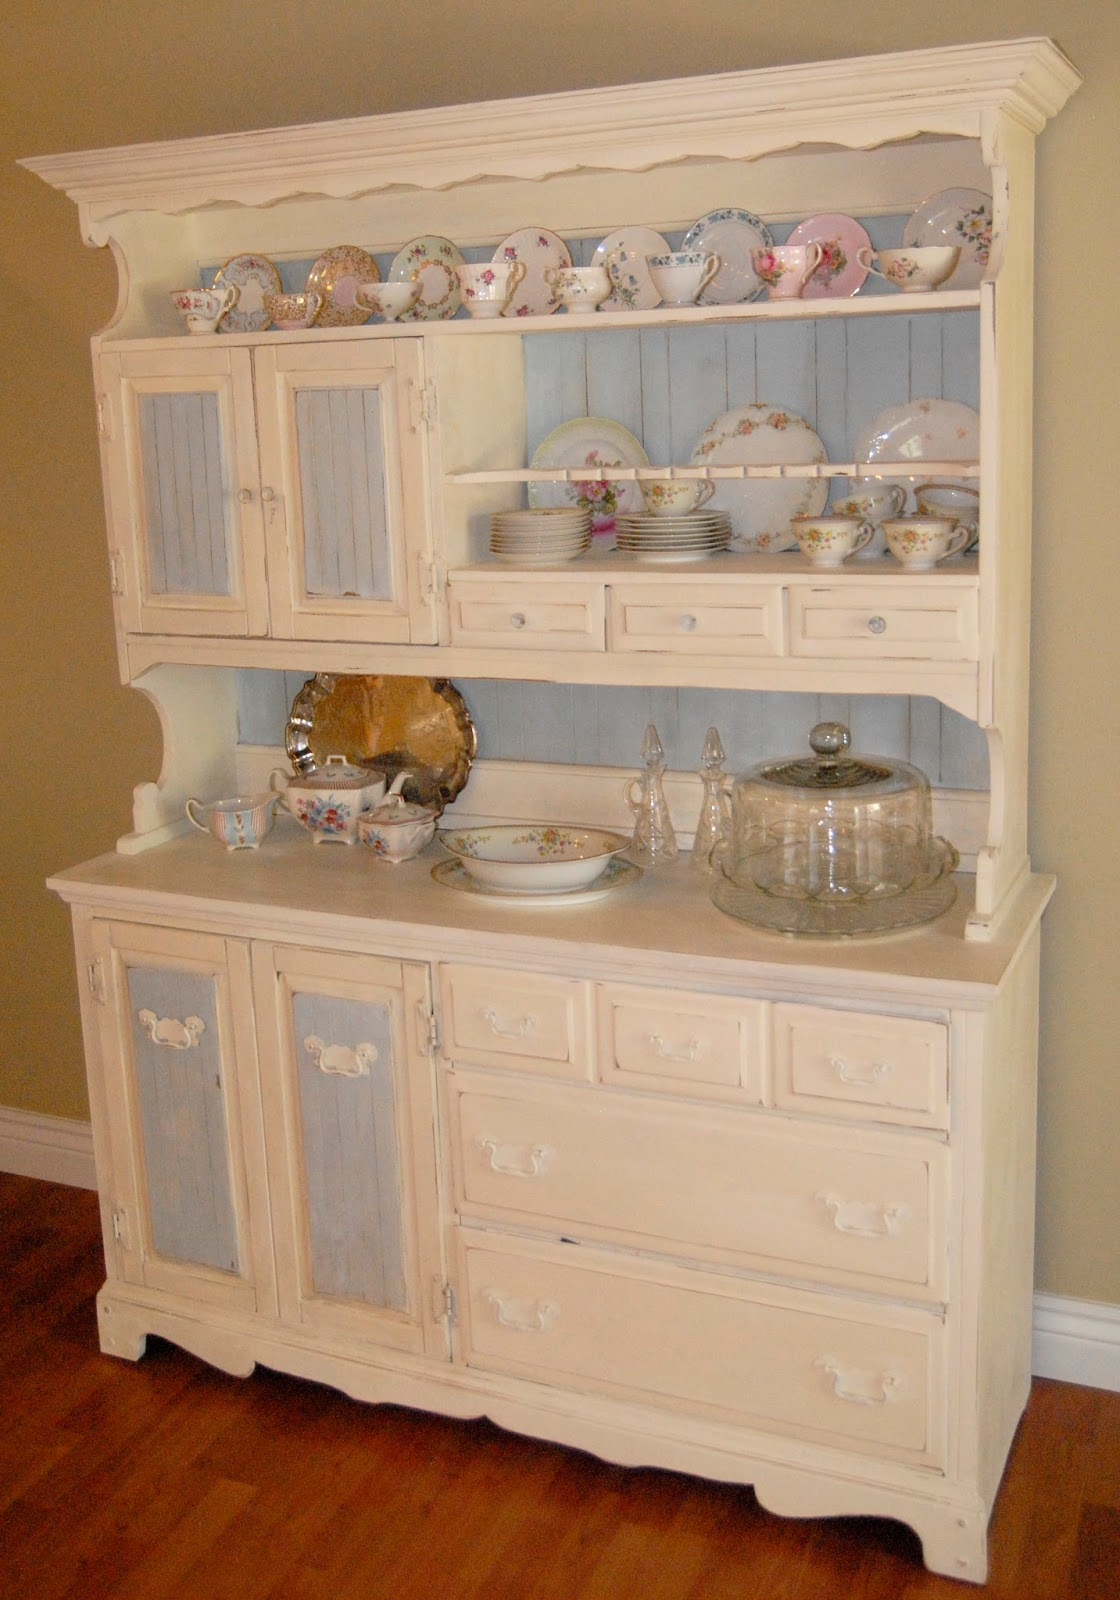 Simply Shabby Annie Sloan Chalk Paint Project